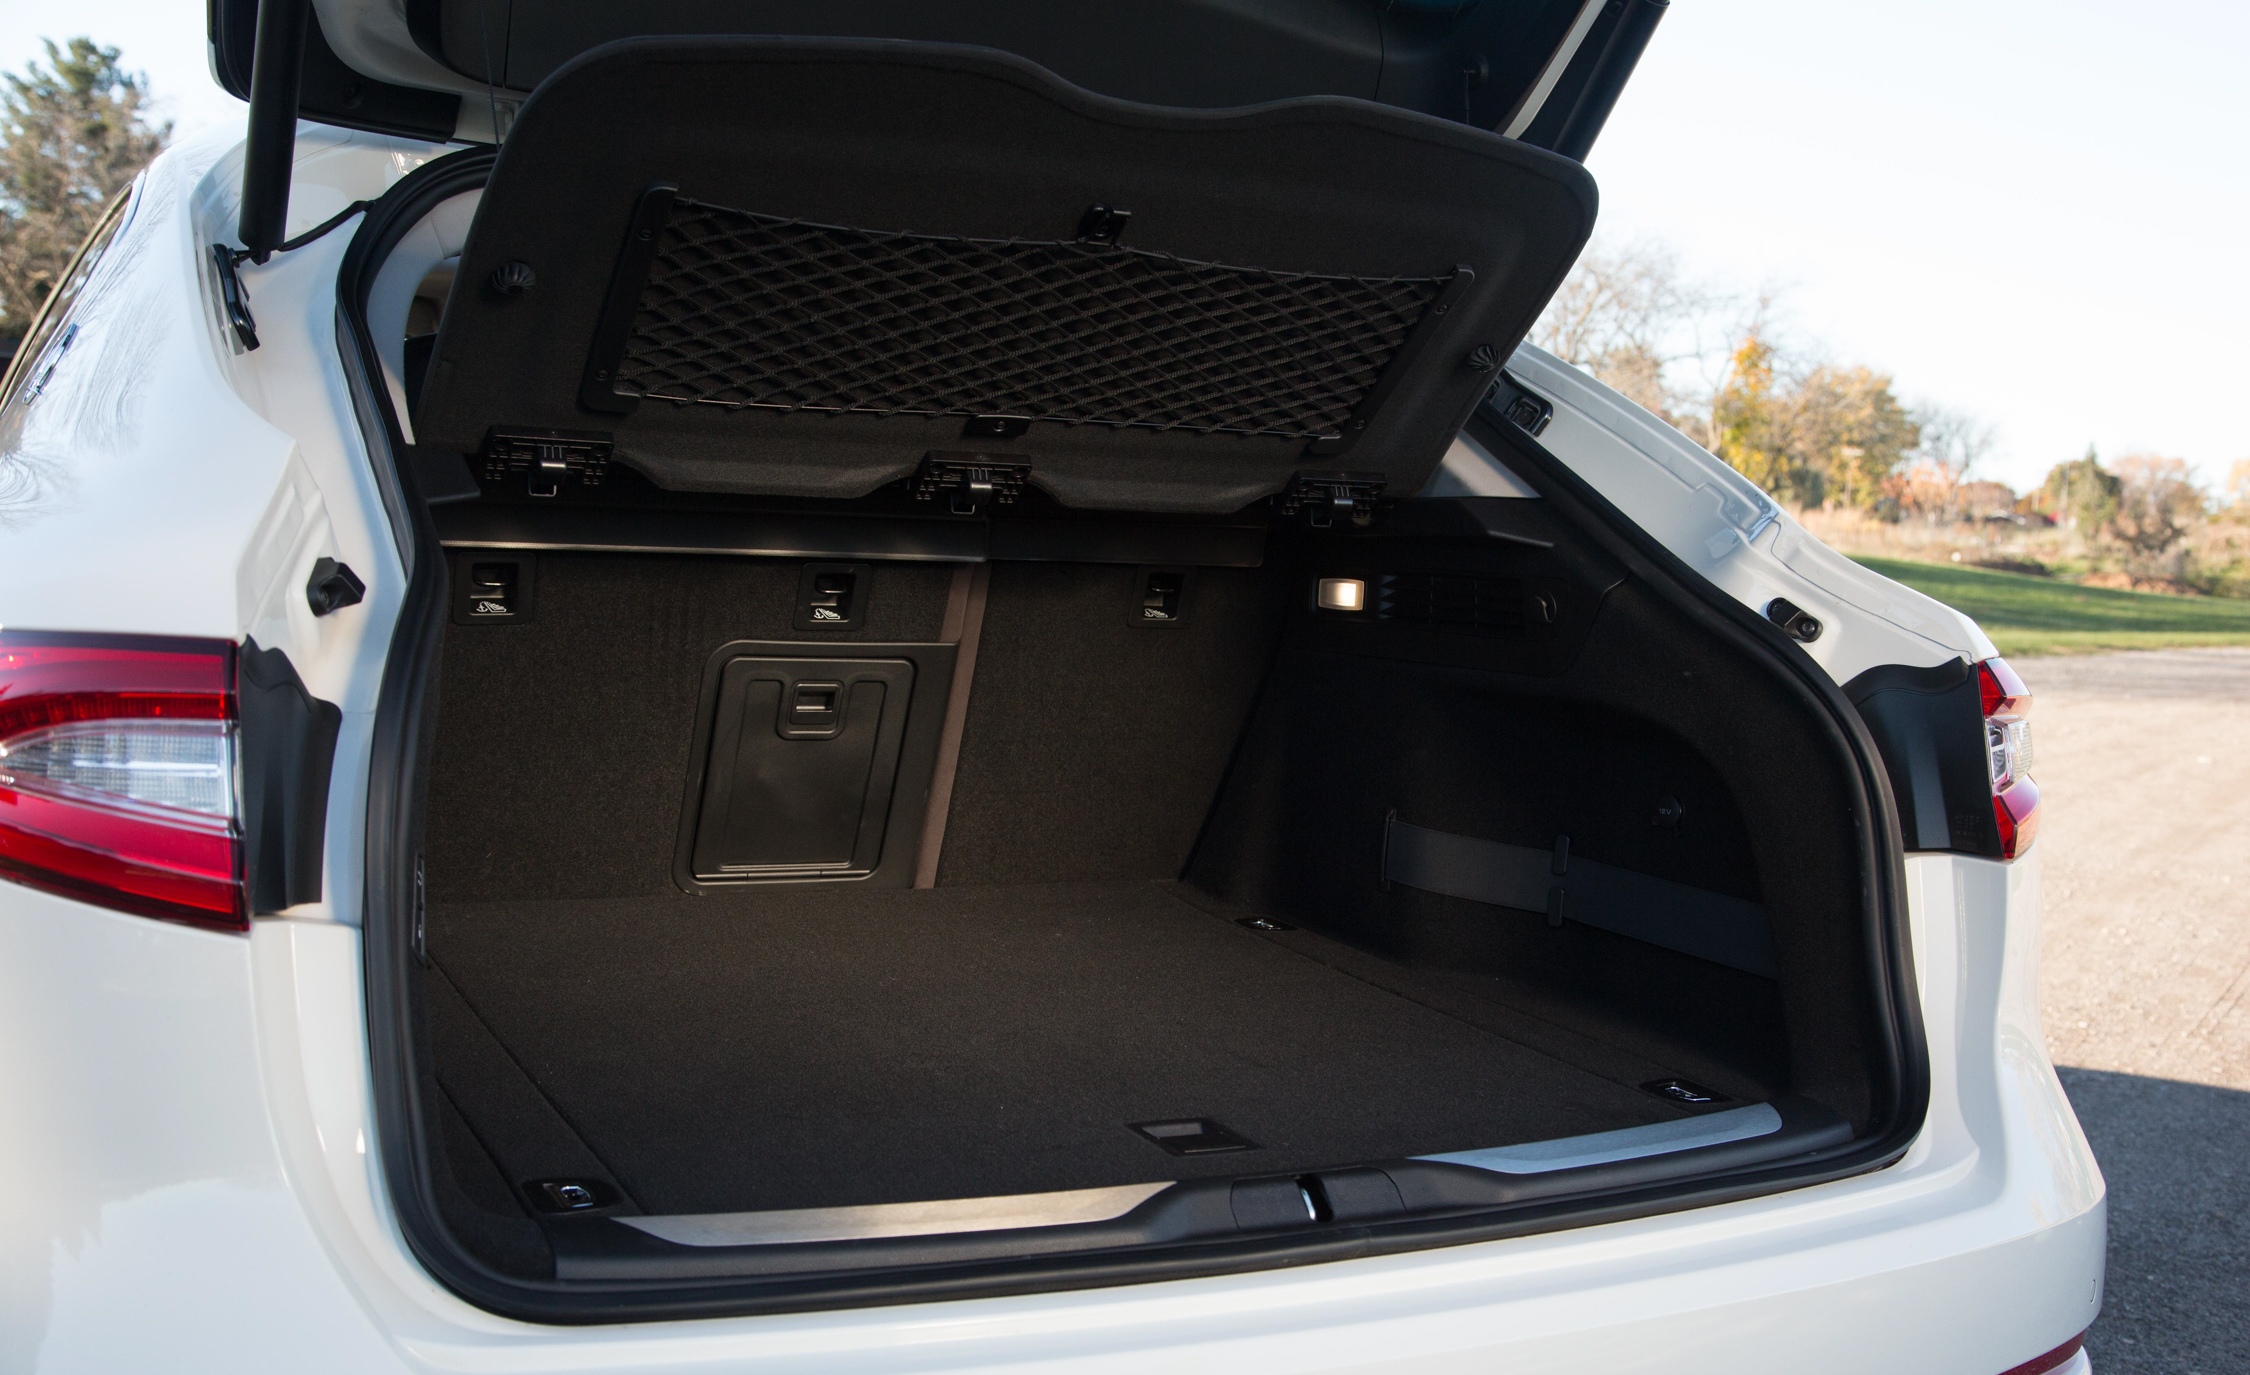 2017 Maserati Levante S Q4 Interior View Cargo Trunk (Photo 12 of 21)